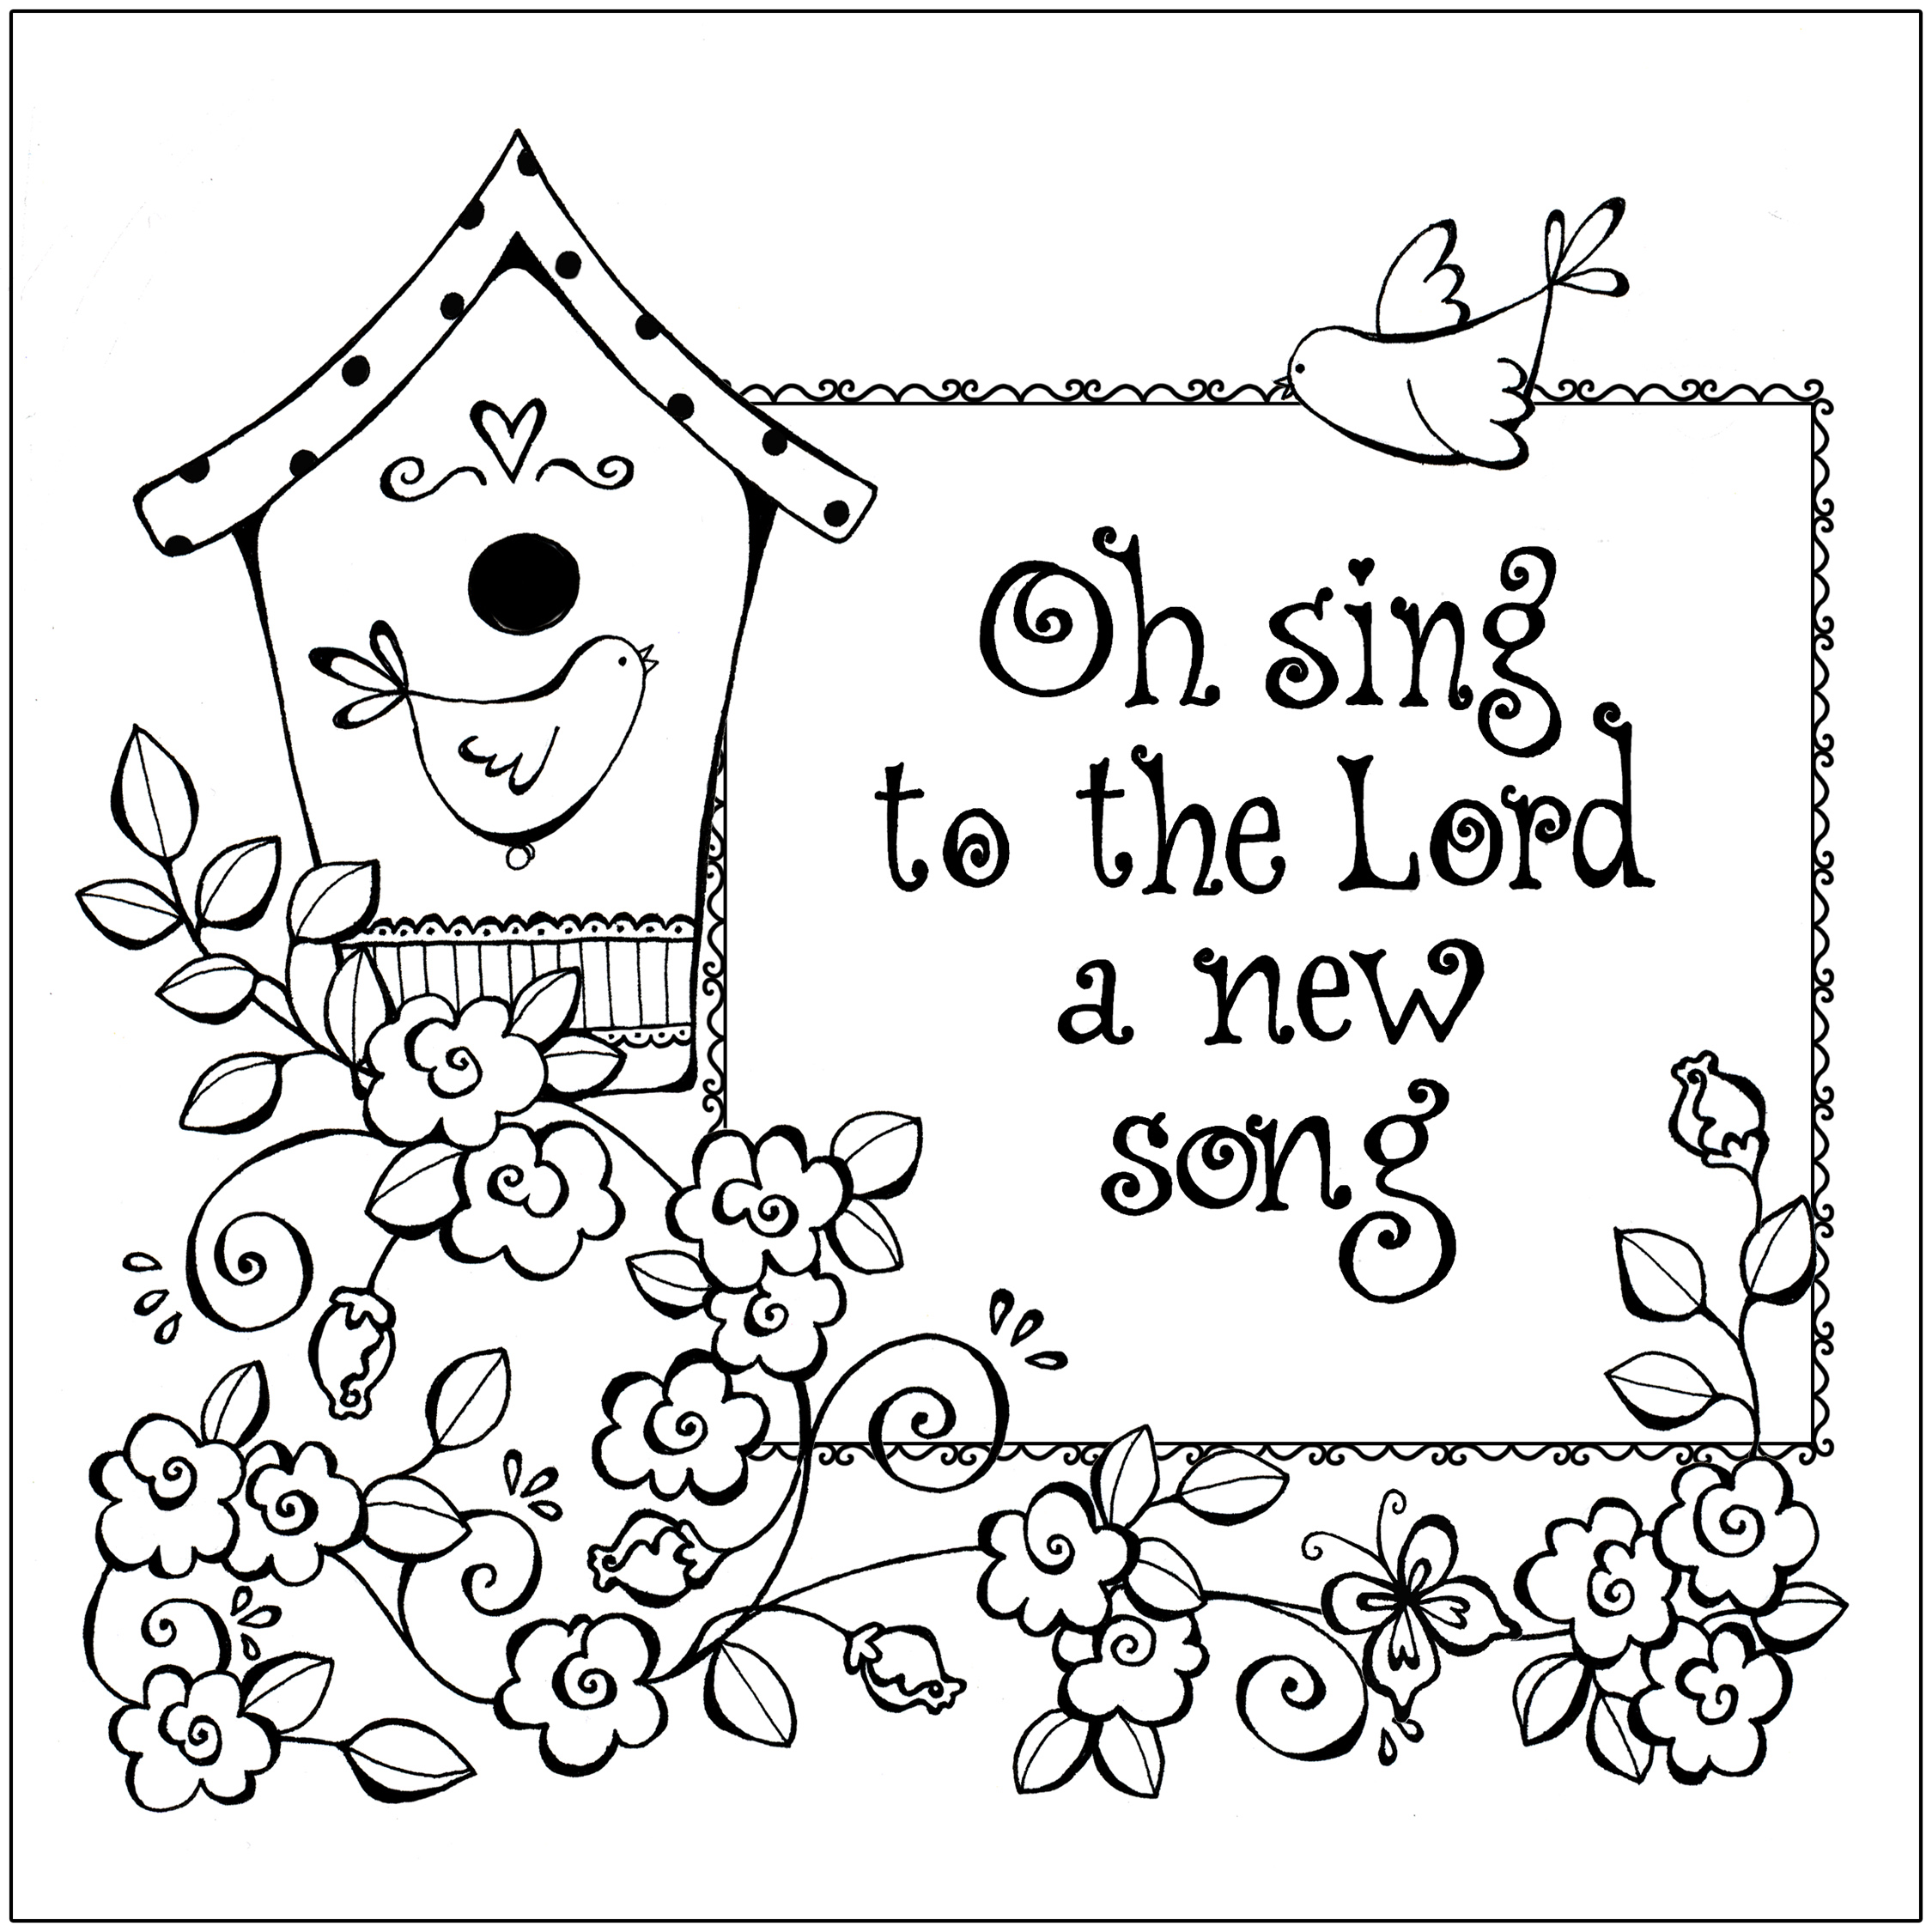 Free printable coloring pages for kids bible - Christian Coloring Page Printable Images